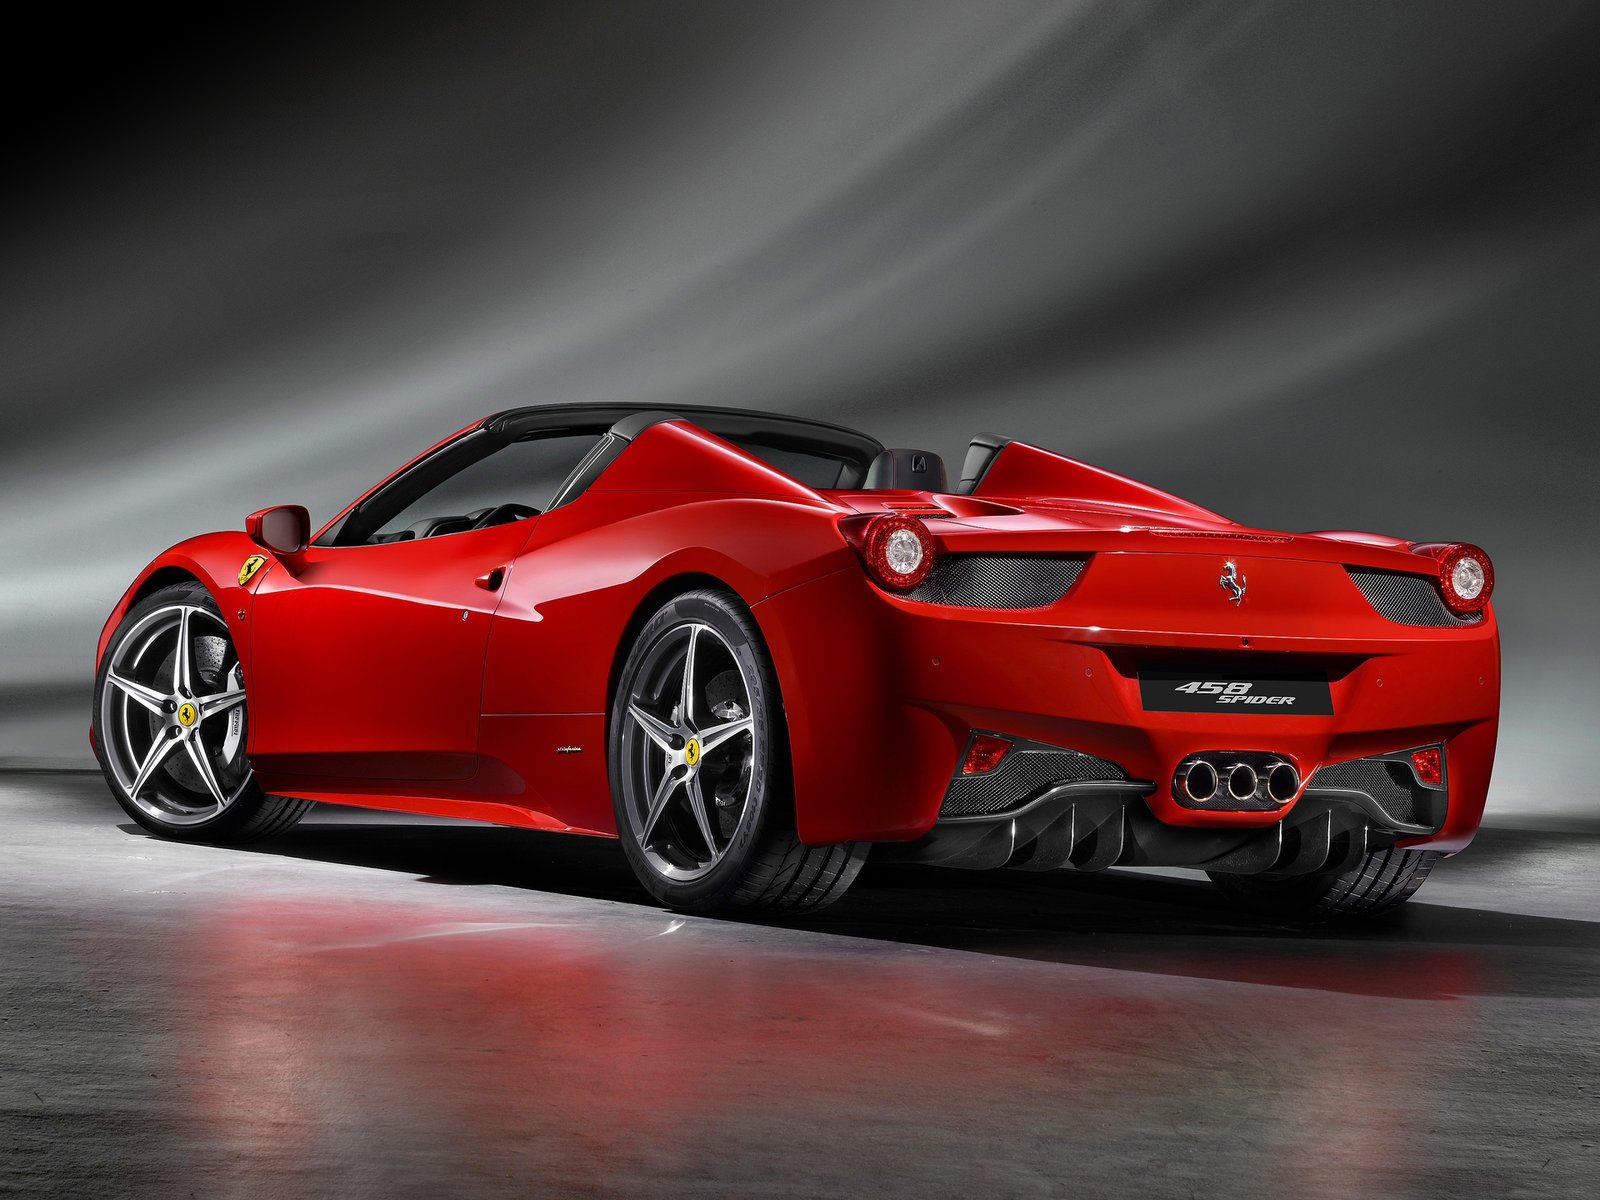 Captivating Ferrari Car Wallpapers. Car Review, Features, Specifications